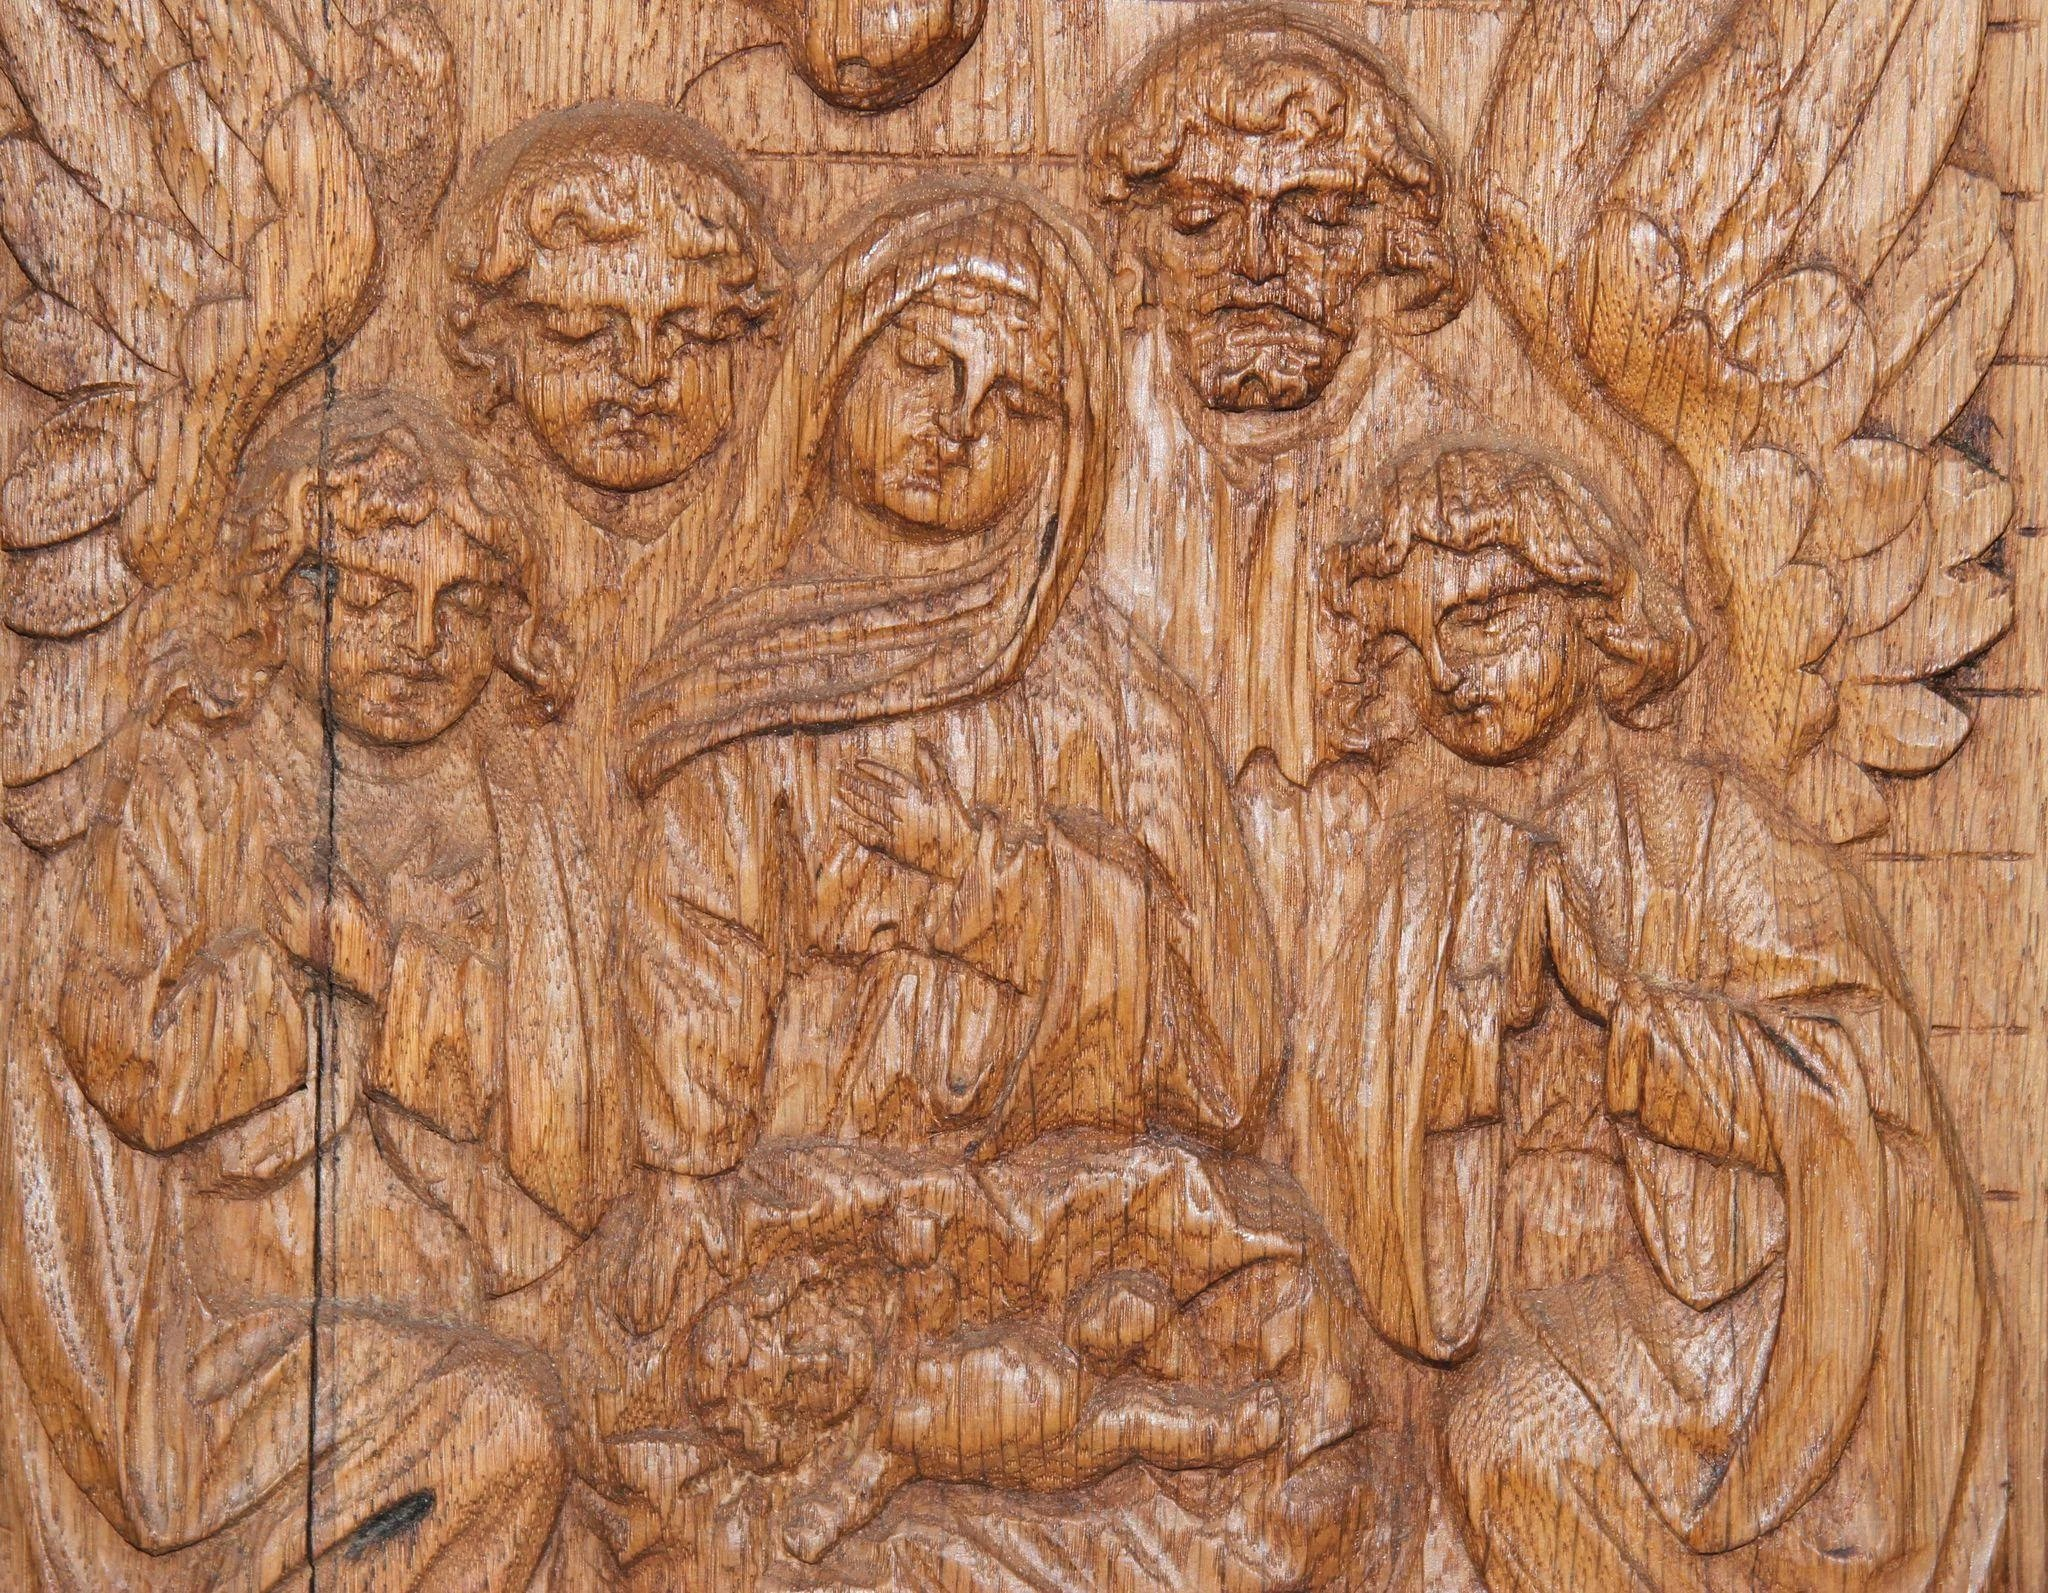 Th century nativity scene wood carved depiction of the